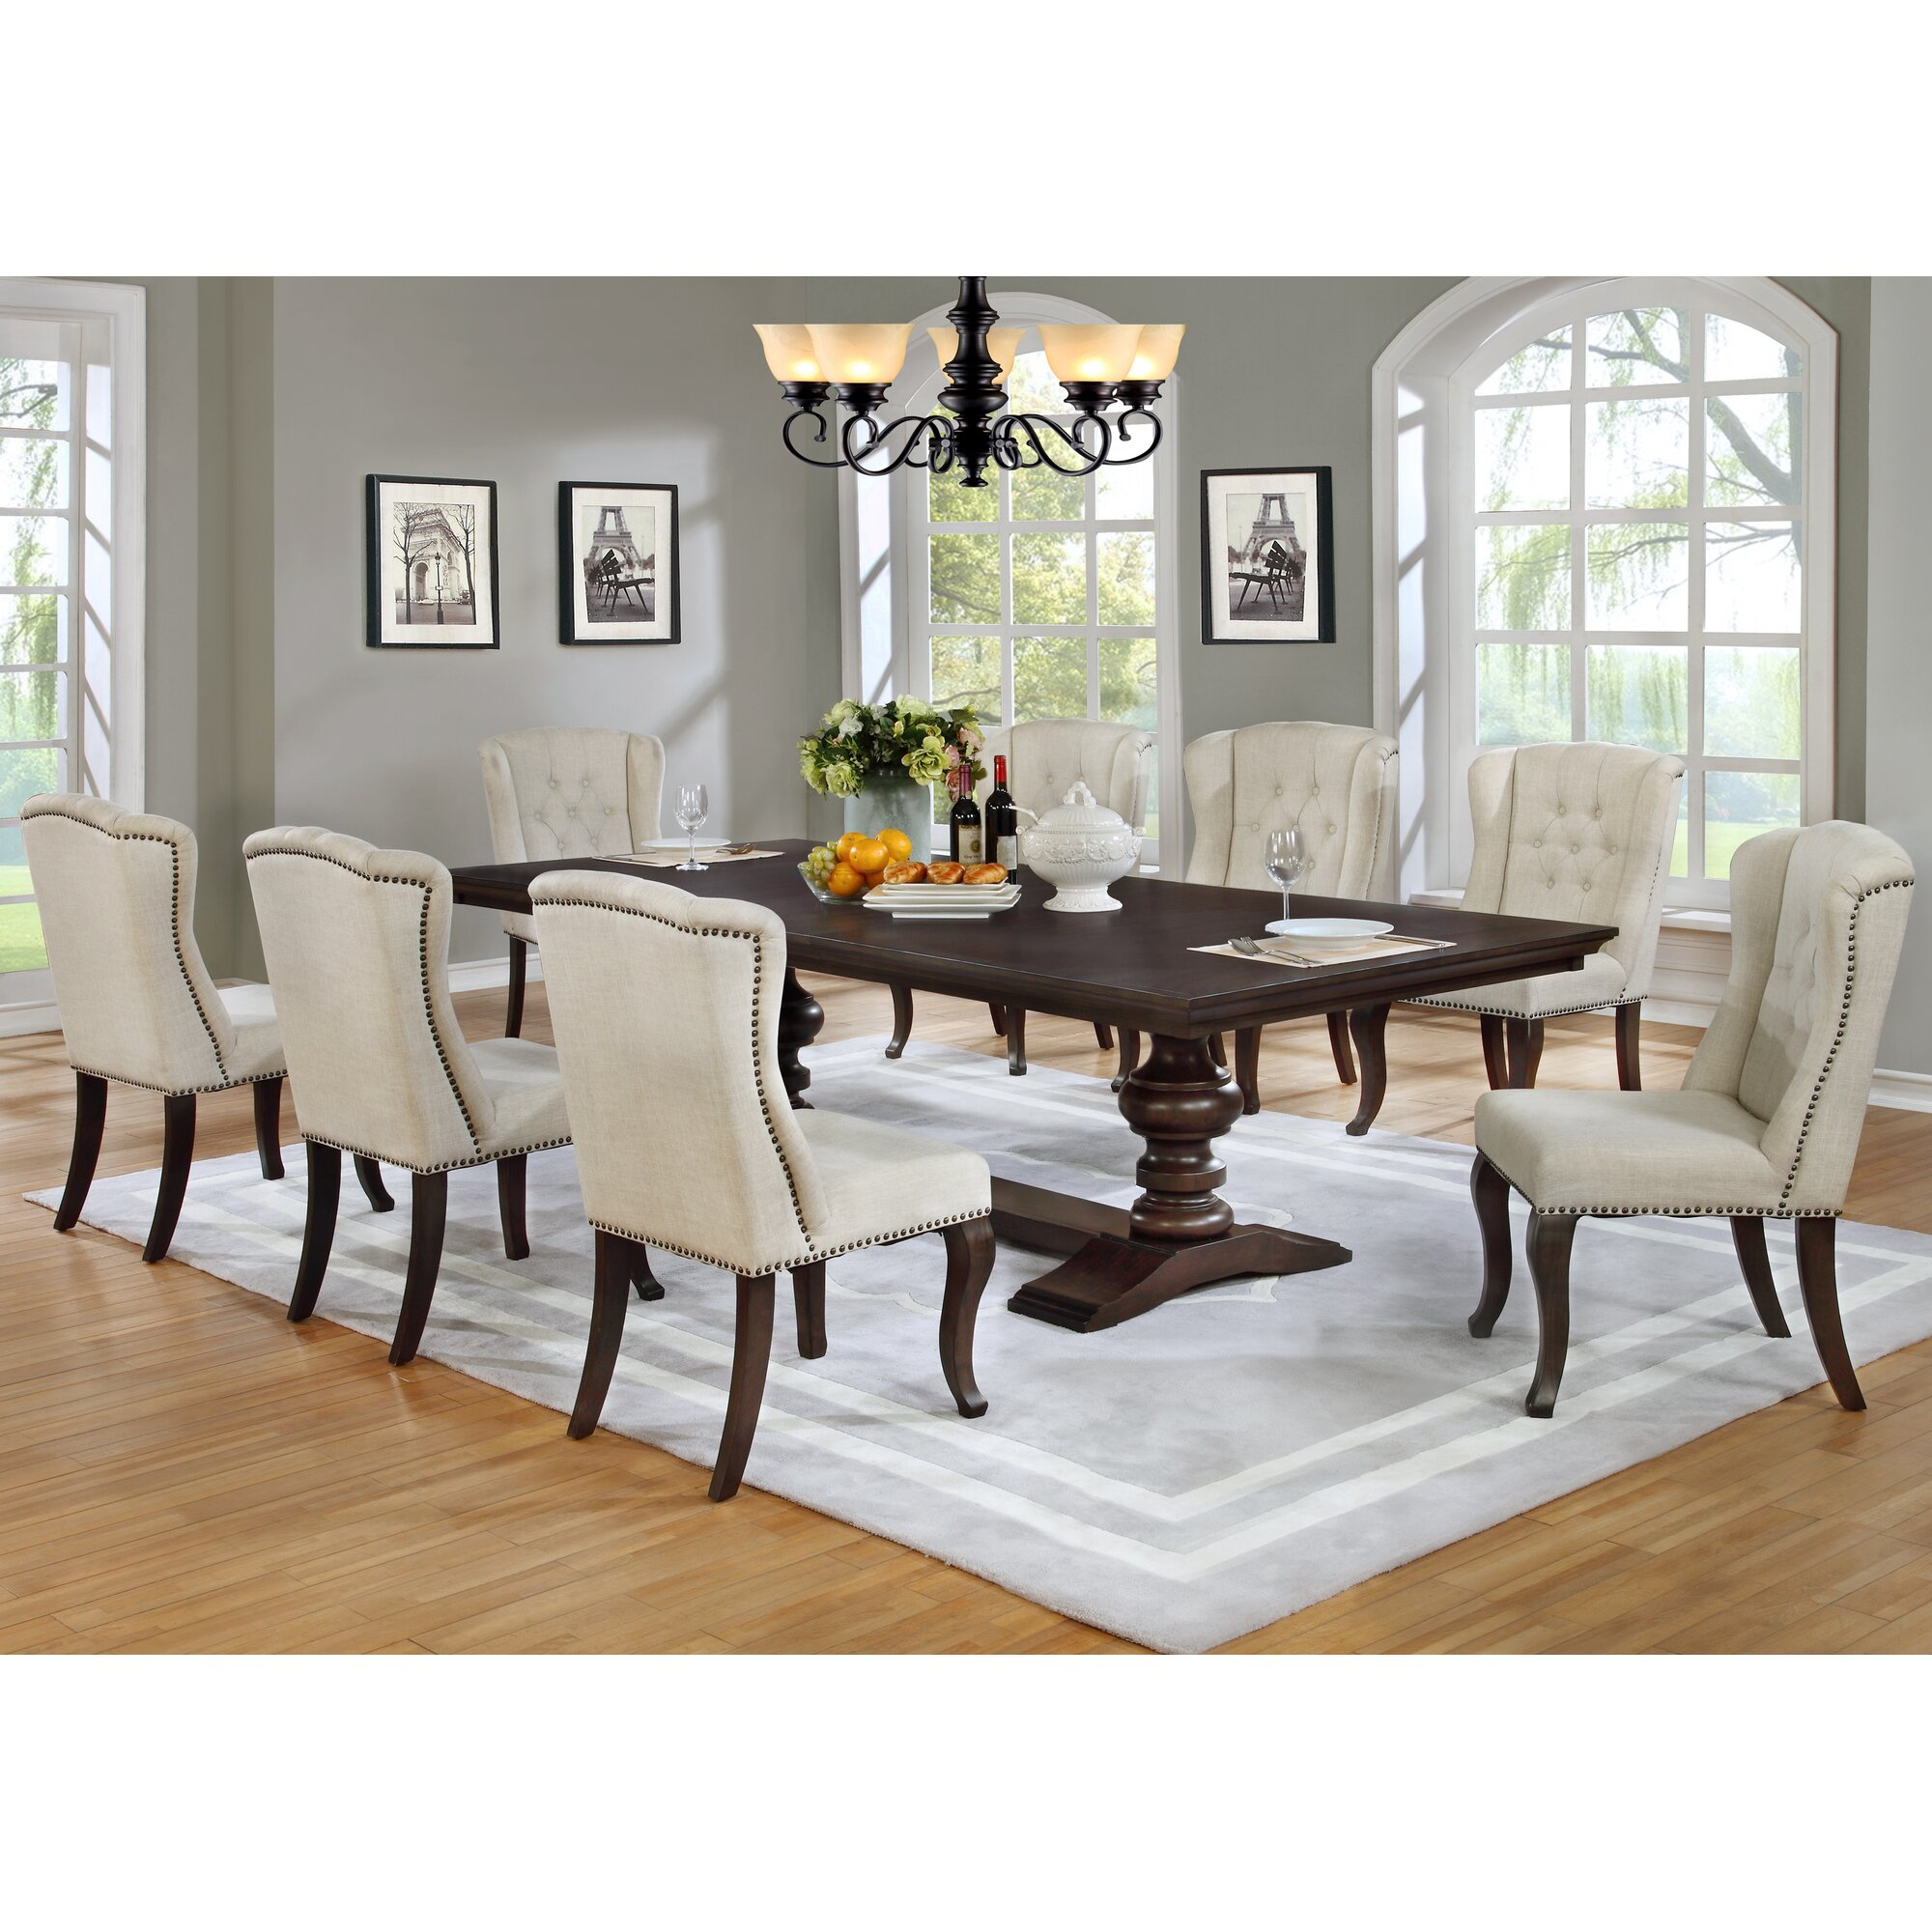 Best Quality Furniture  Piece Dining Set  Reviews Wayfair - Best quality dining room furniture